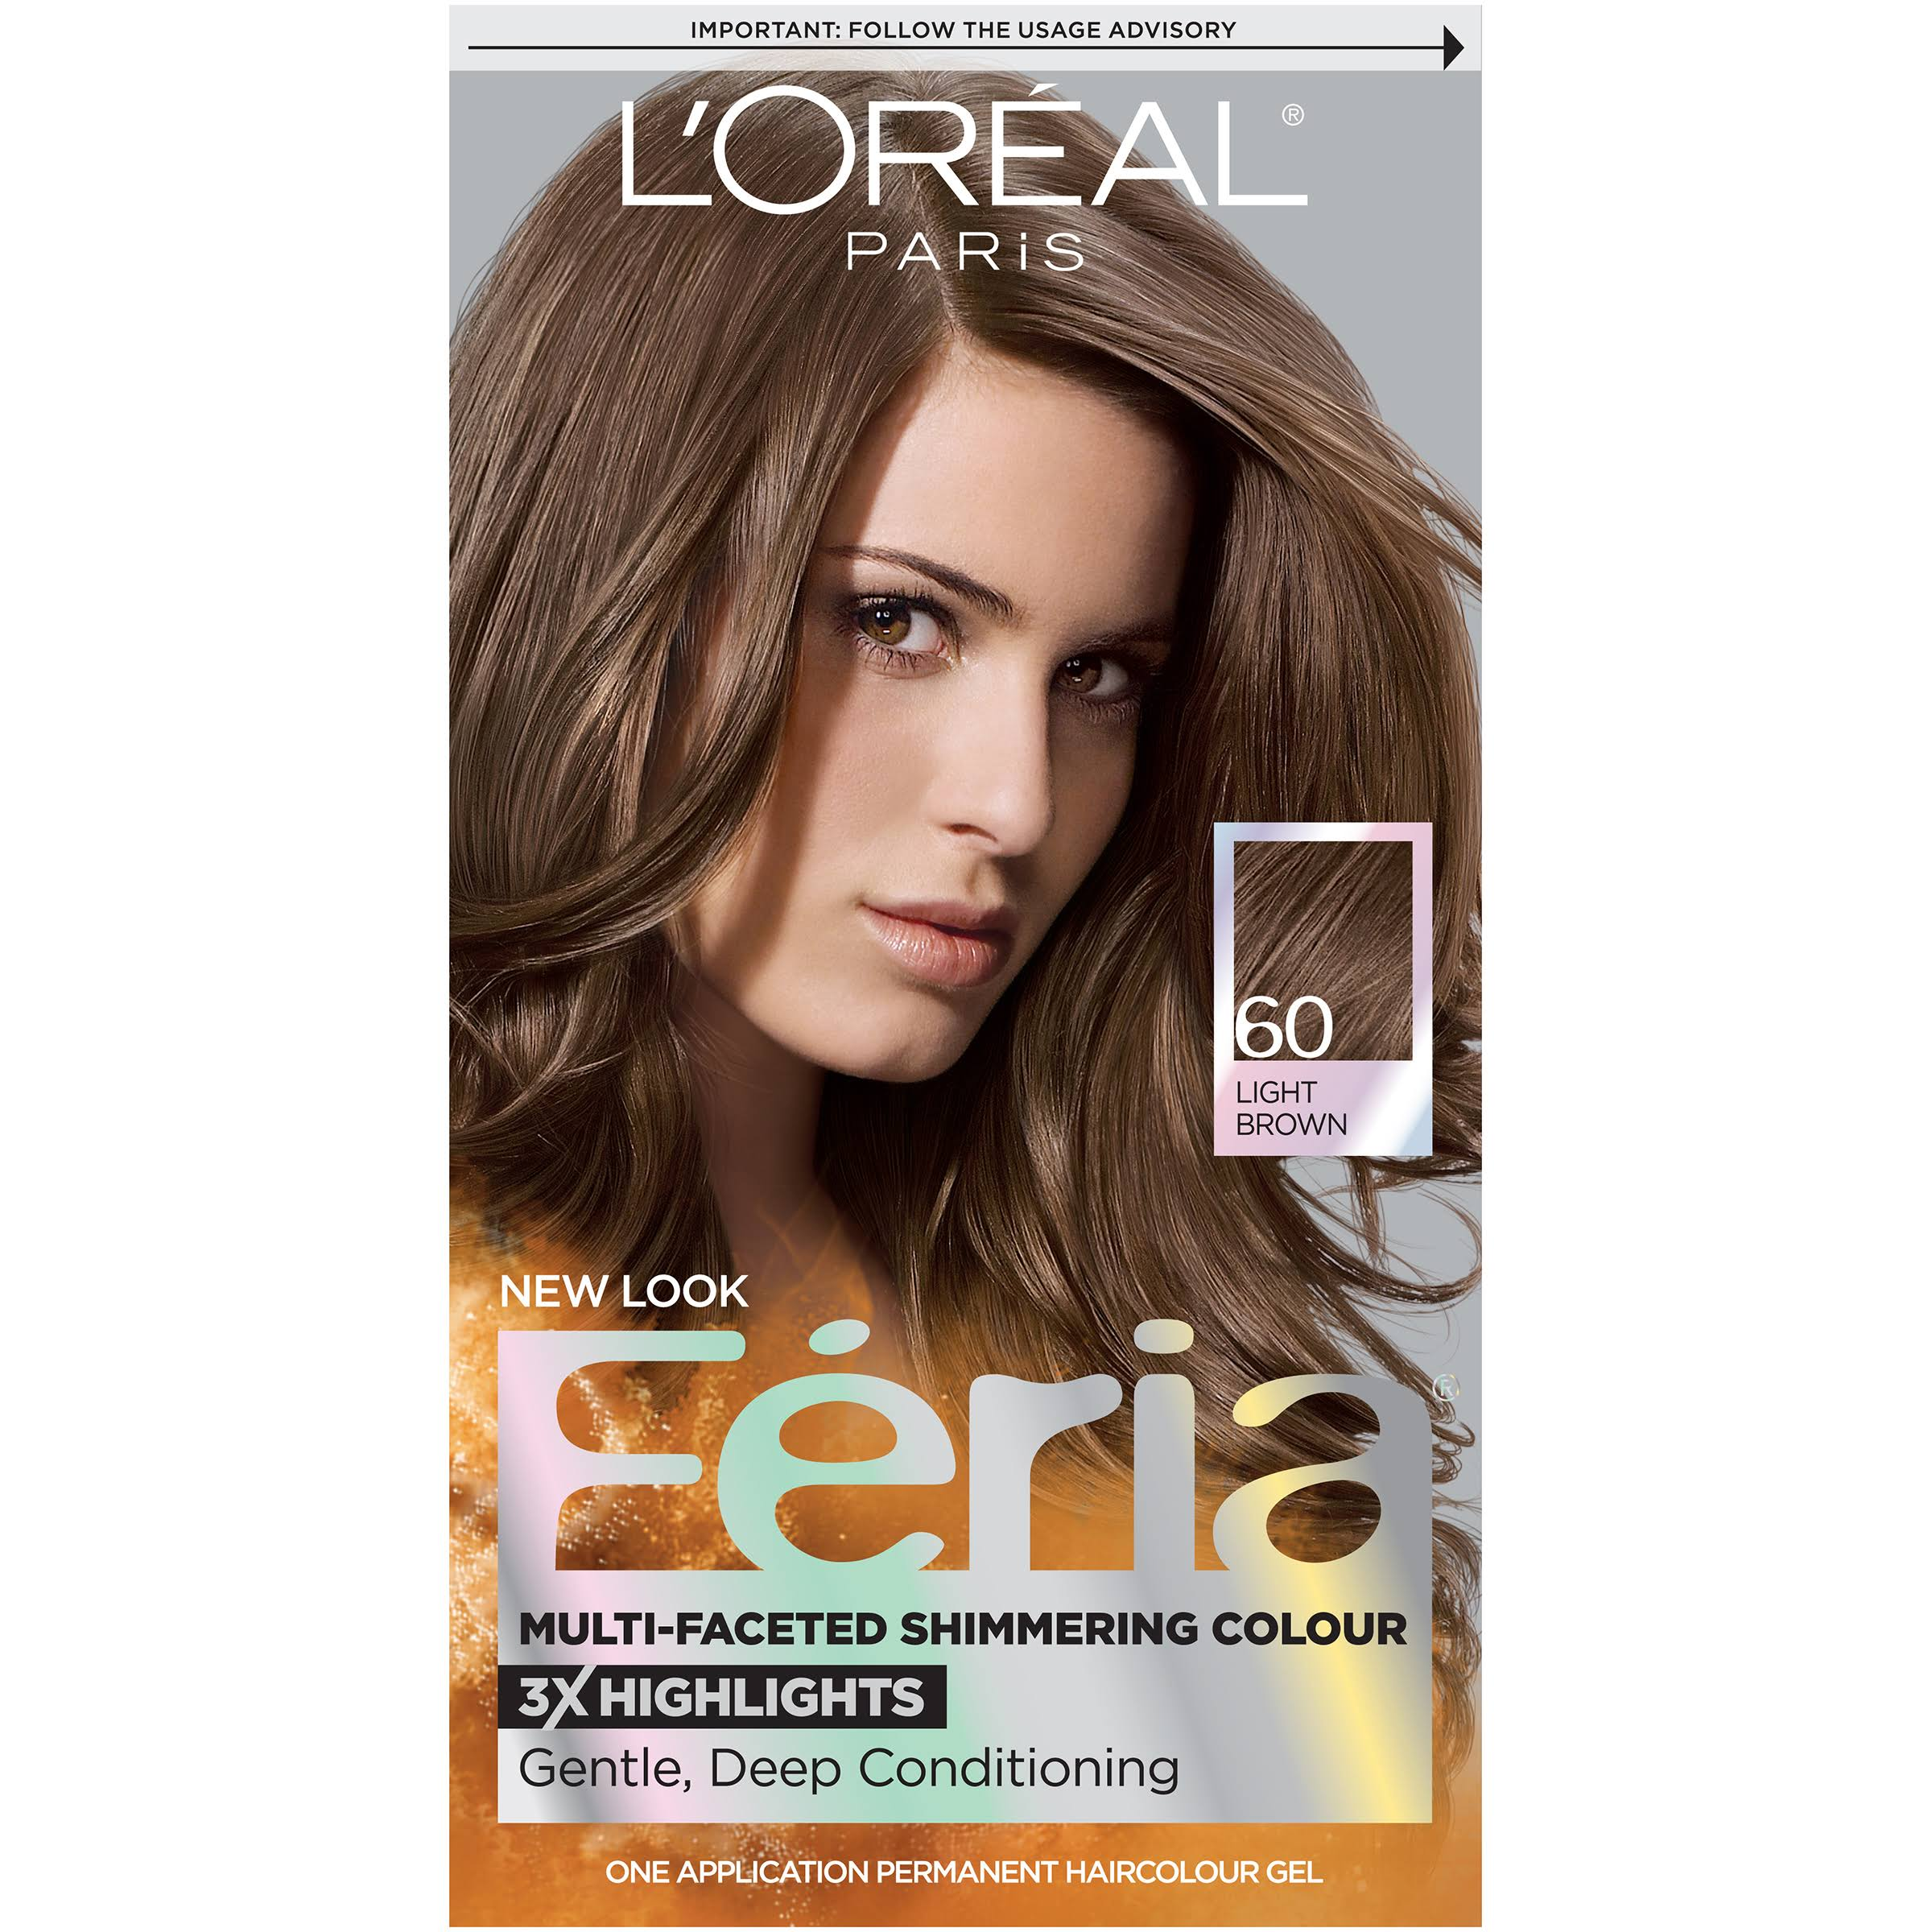 L'Oreal Paris Feria Permanent Hair Color - 60 Light Brown